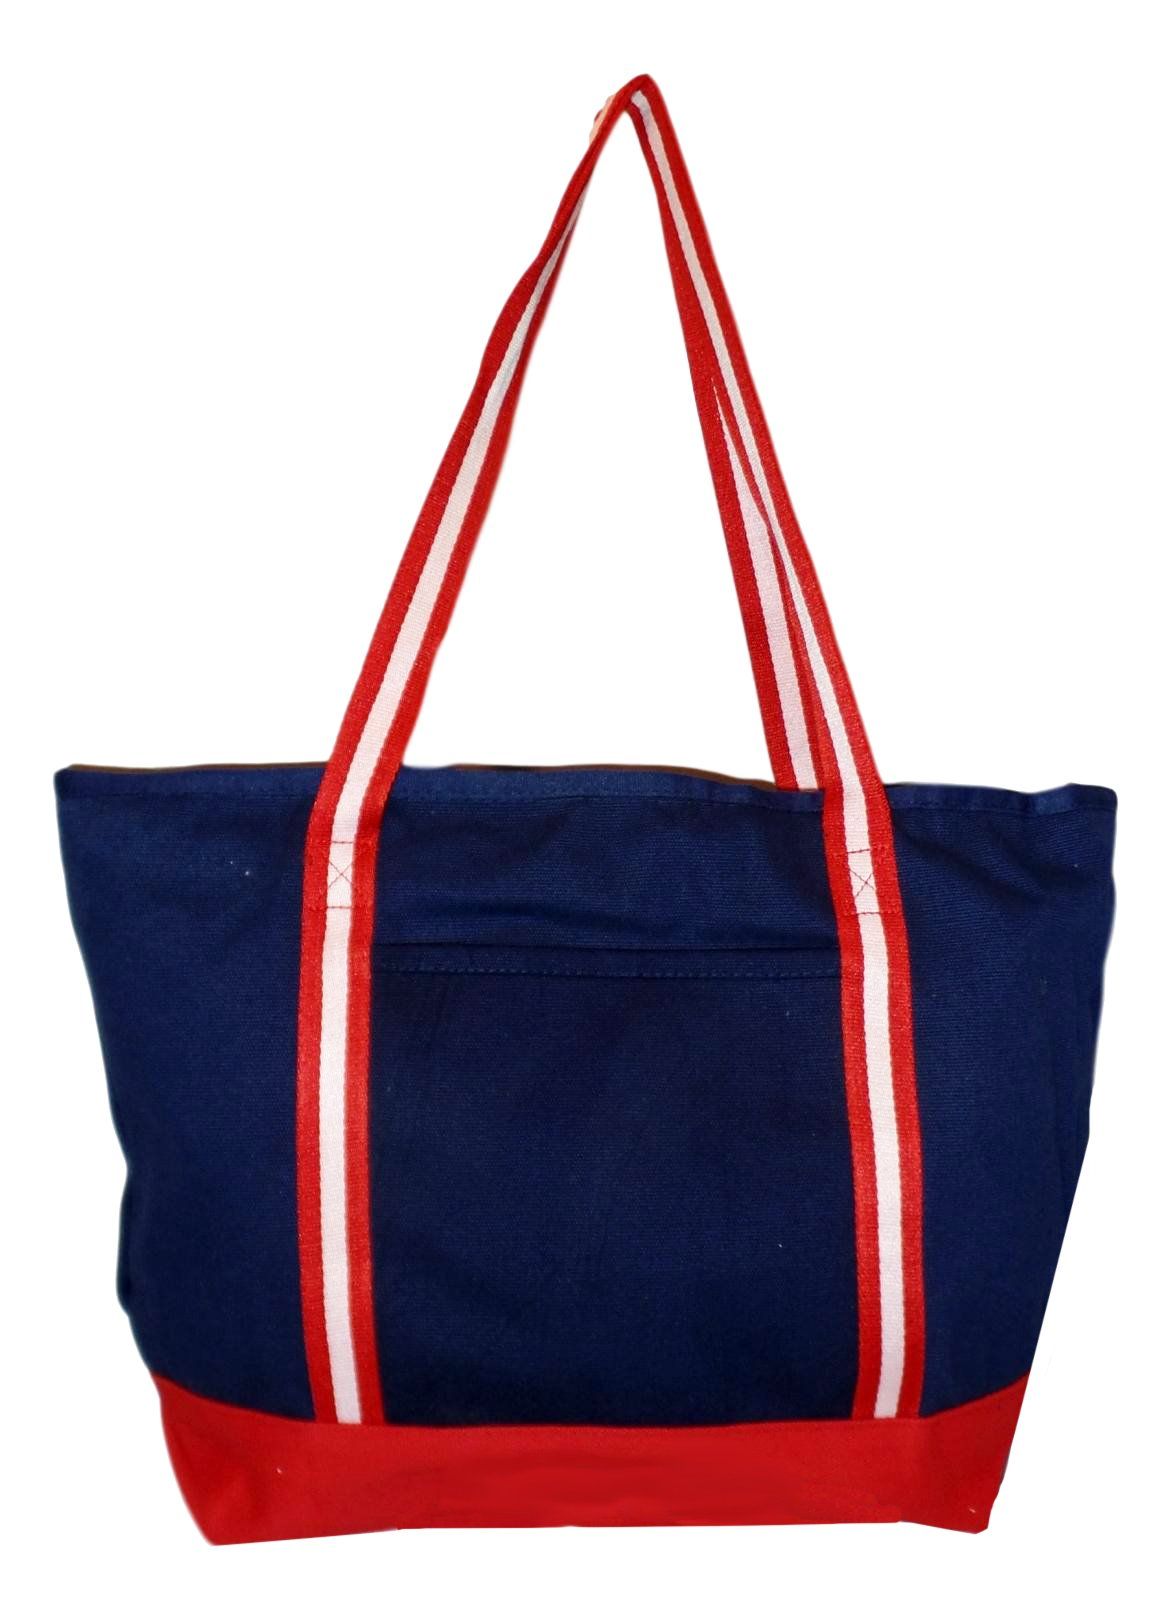 Premium Large 24 oz Cotton Canvas Zipper Top Tote Shopper Bag - Custom Available (Navy with Red White Straps)